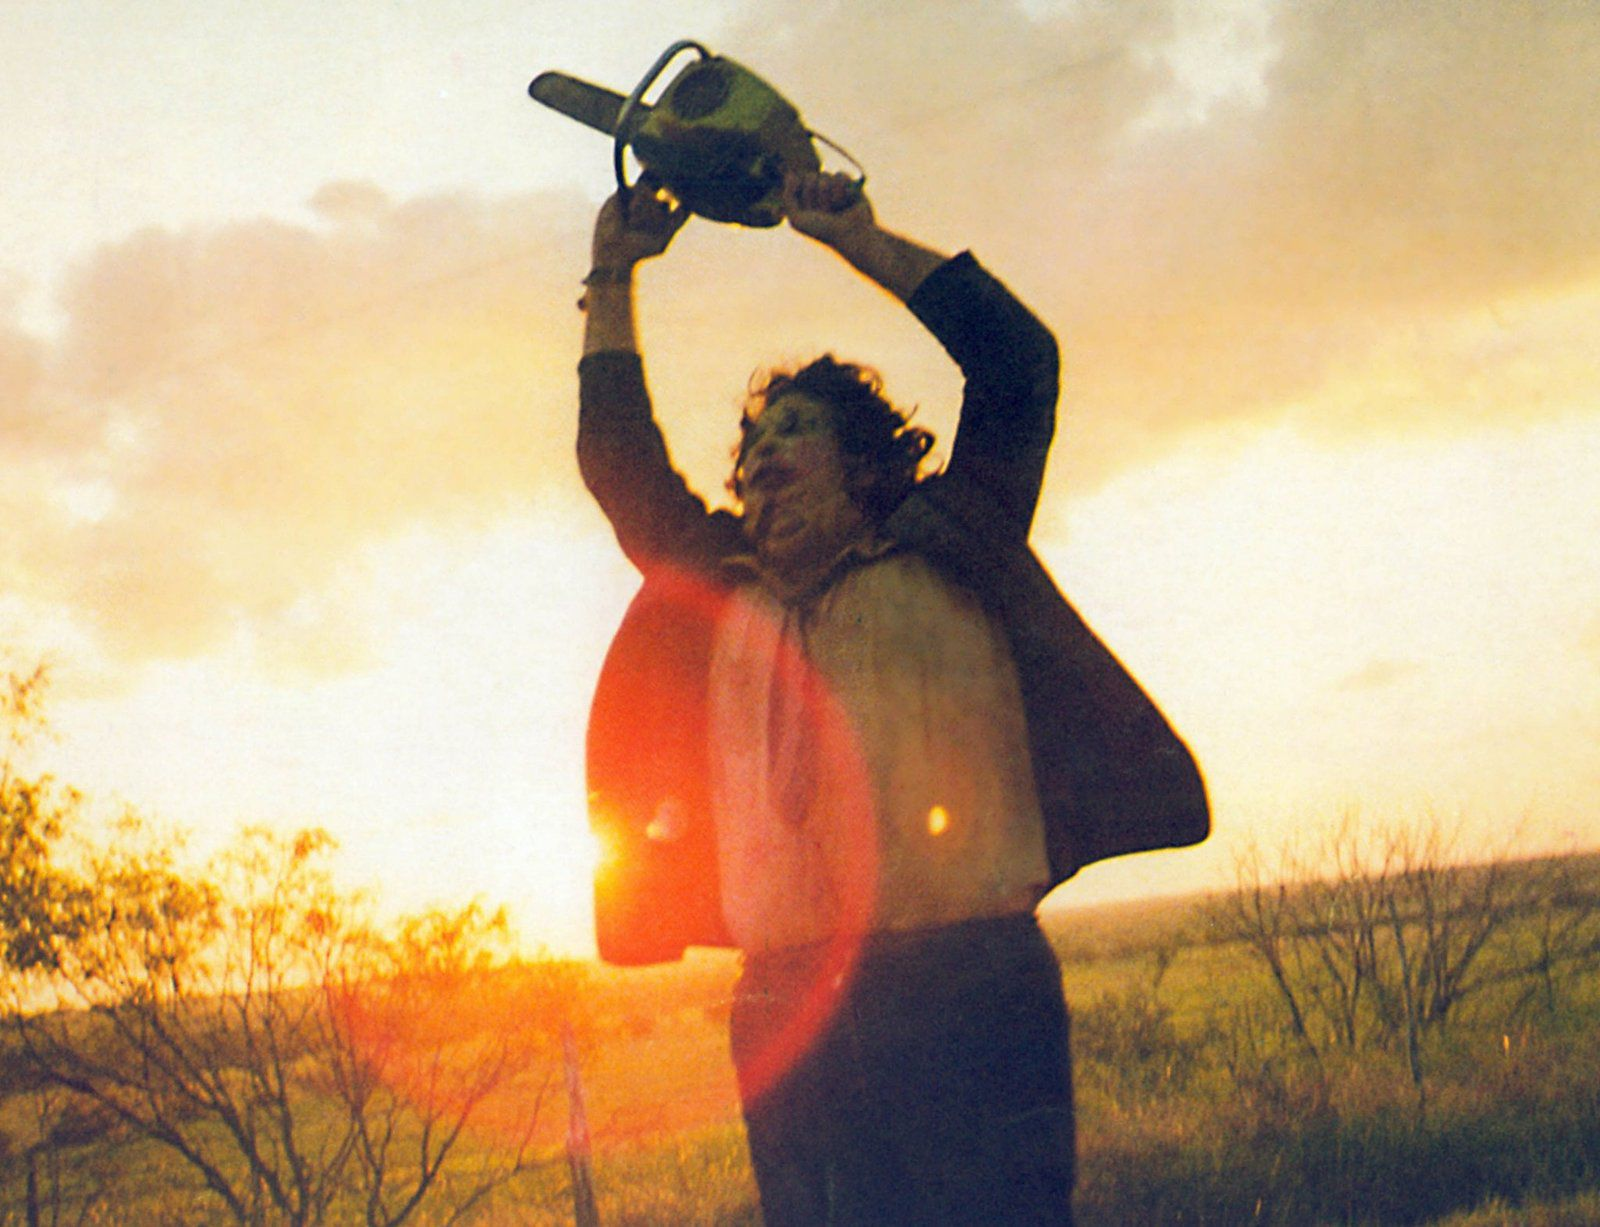 « The Texas Chainsaw Massacre » Tobe Hooper (1974)